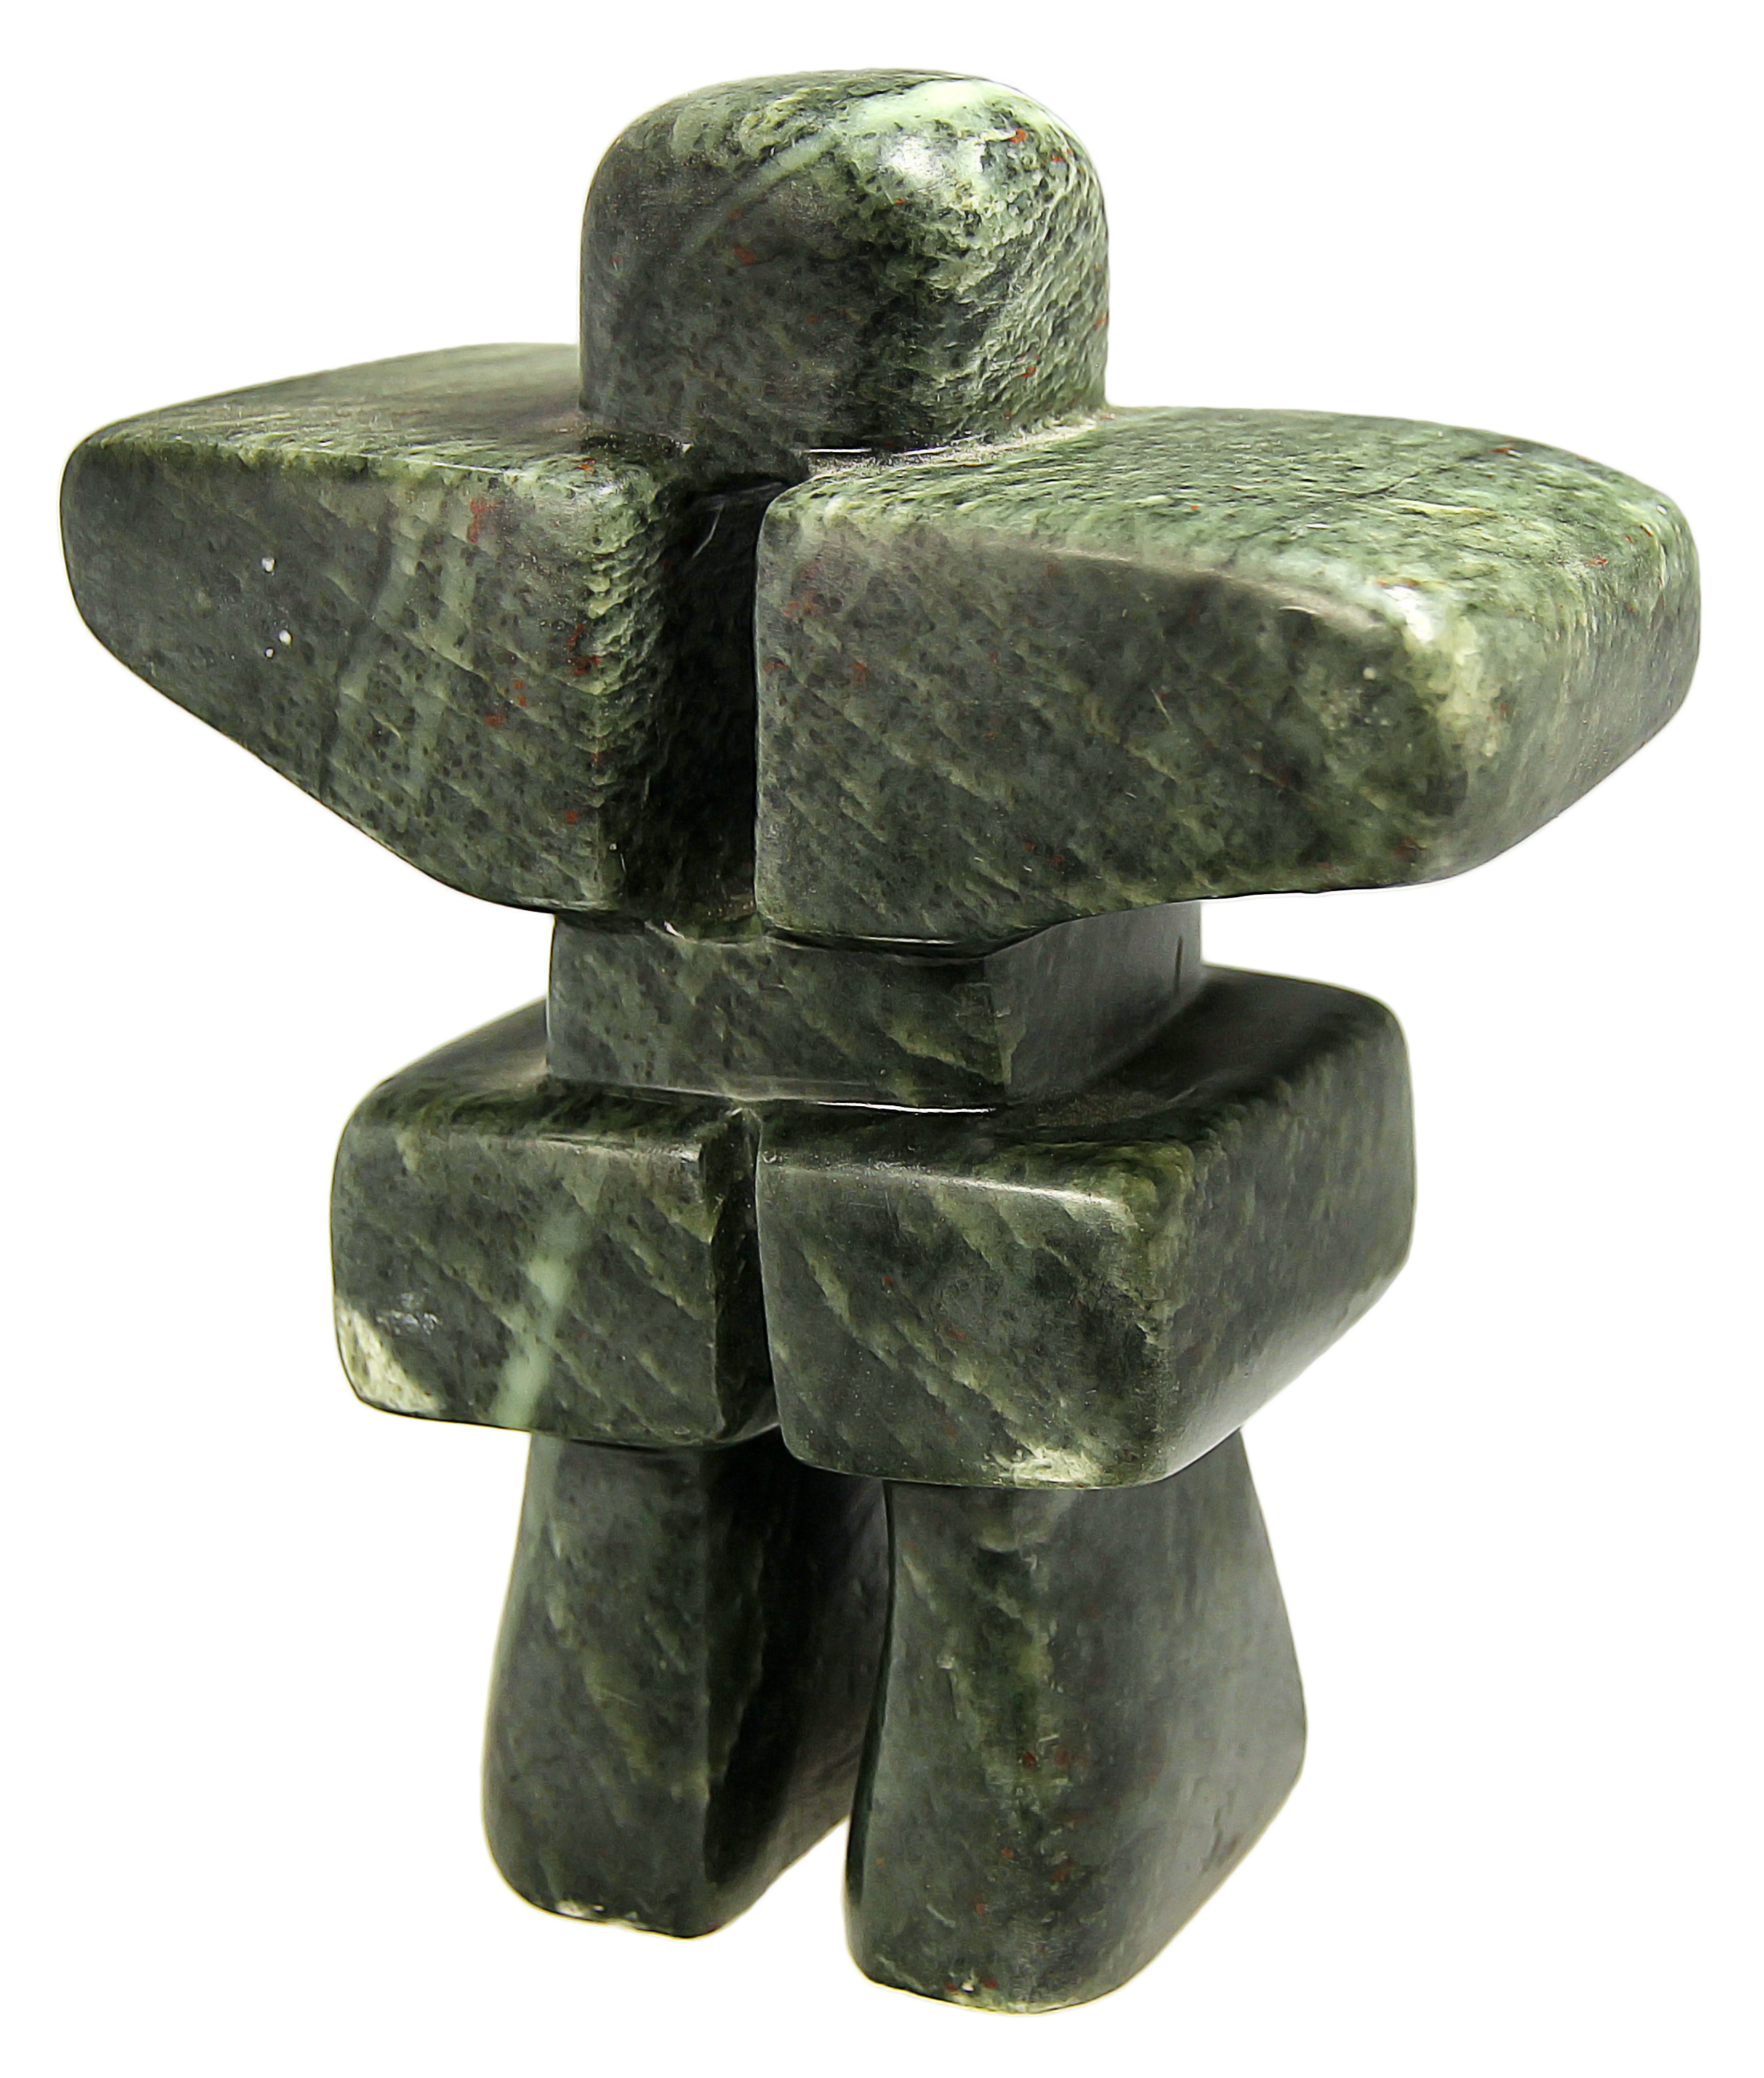 Soapstone Inukshuk Sculpture Carving Kit